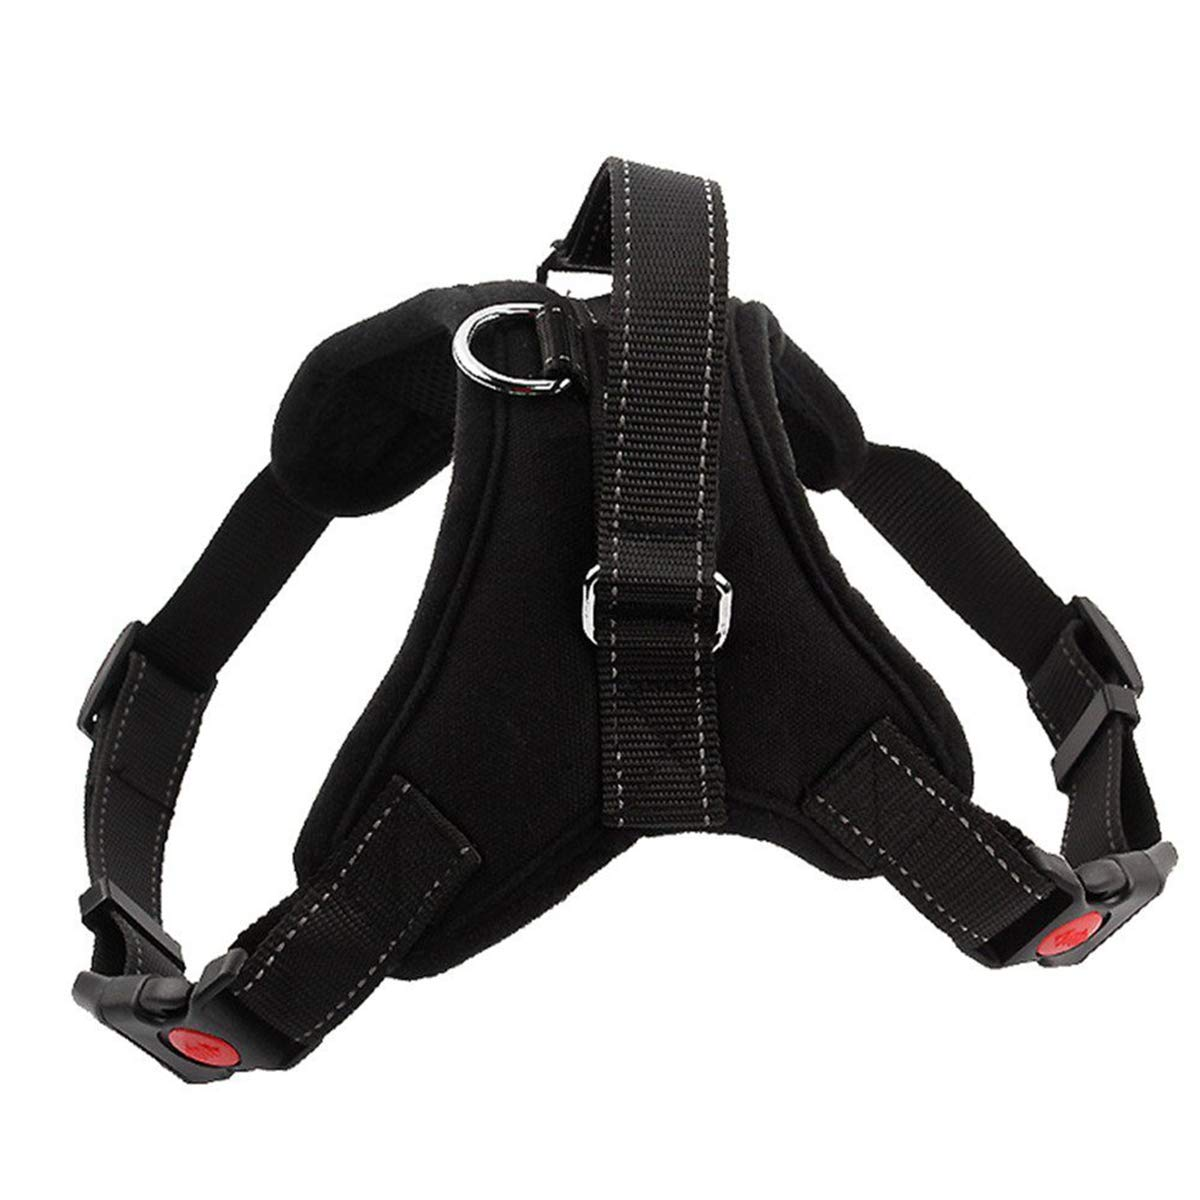 Black XL Black XL Vinca Mascot Black No Pull Dog Harness with Handle Adjustable Pet Heavy Duty Reflective Safety Harnesses Padded Chest Vest for Small Medium XL Large Dogs Daily Walking Traning Traveling (Black,XL)